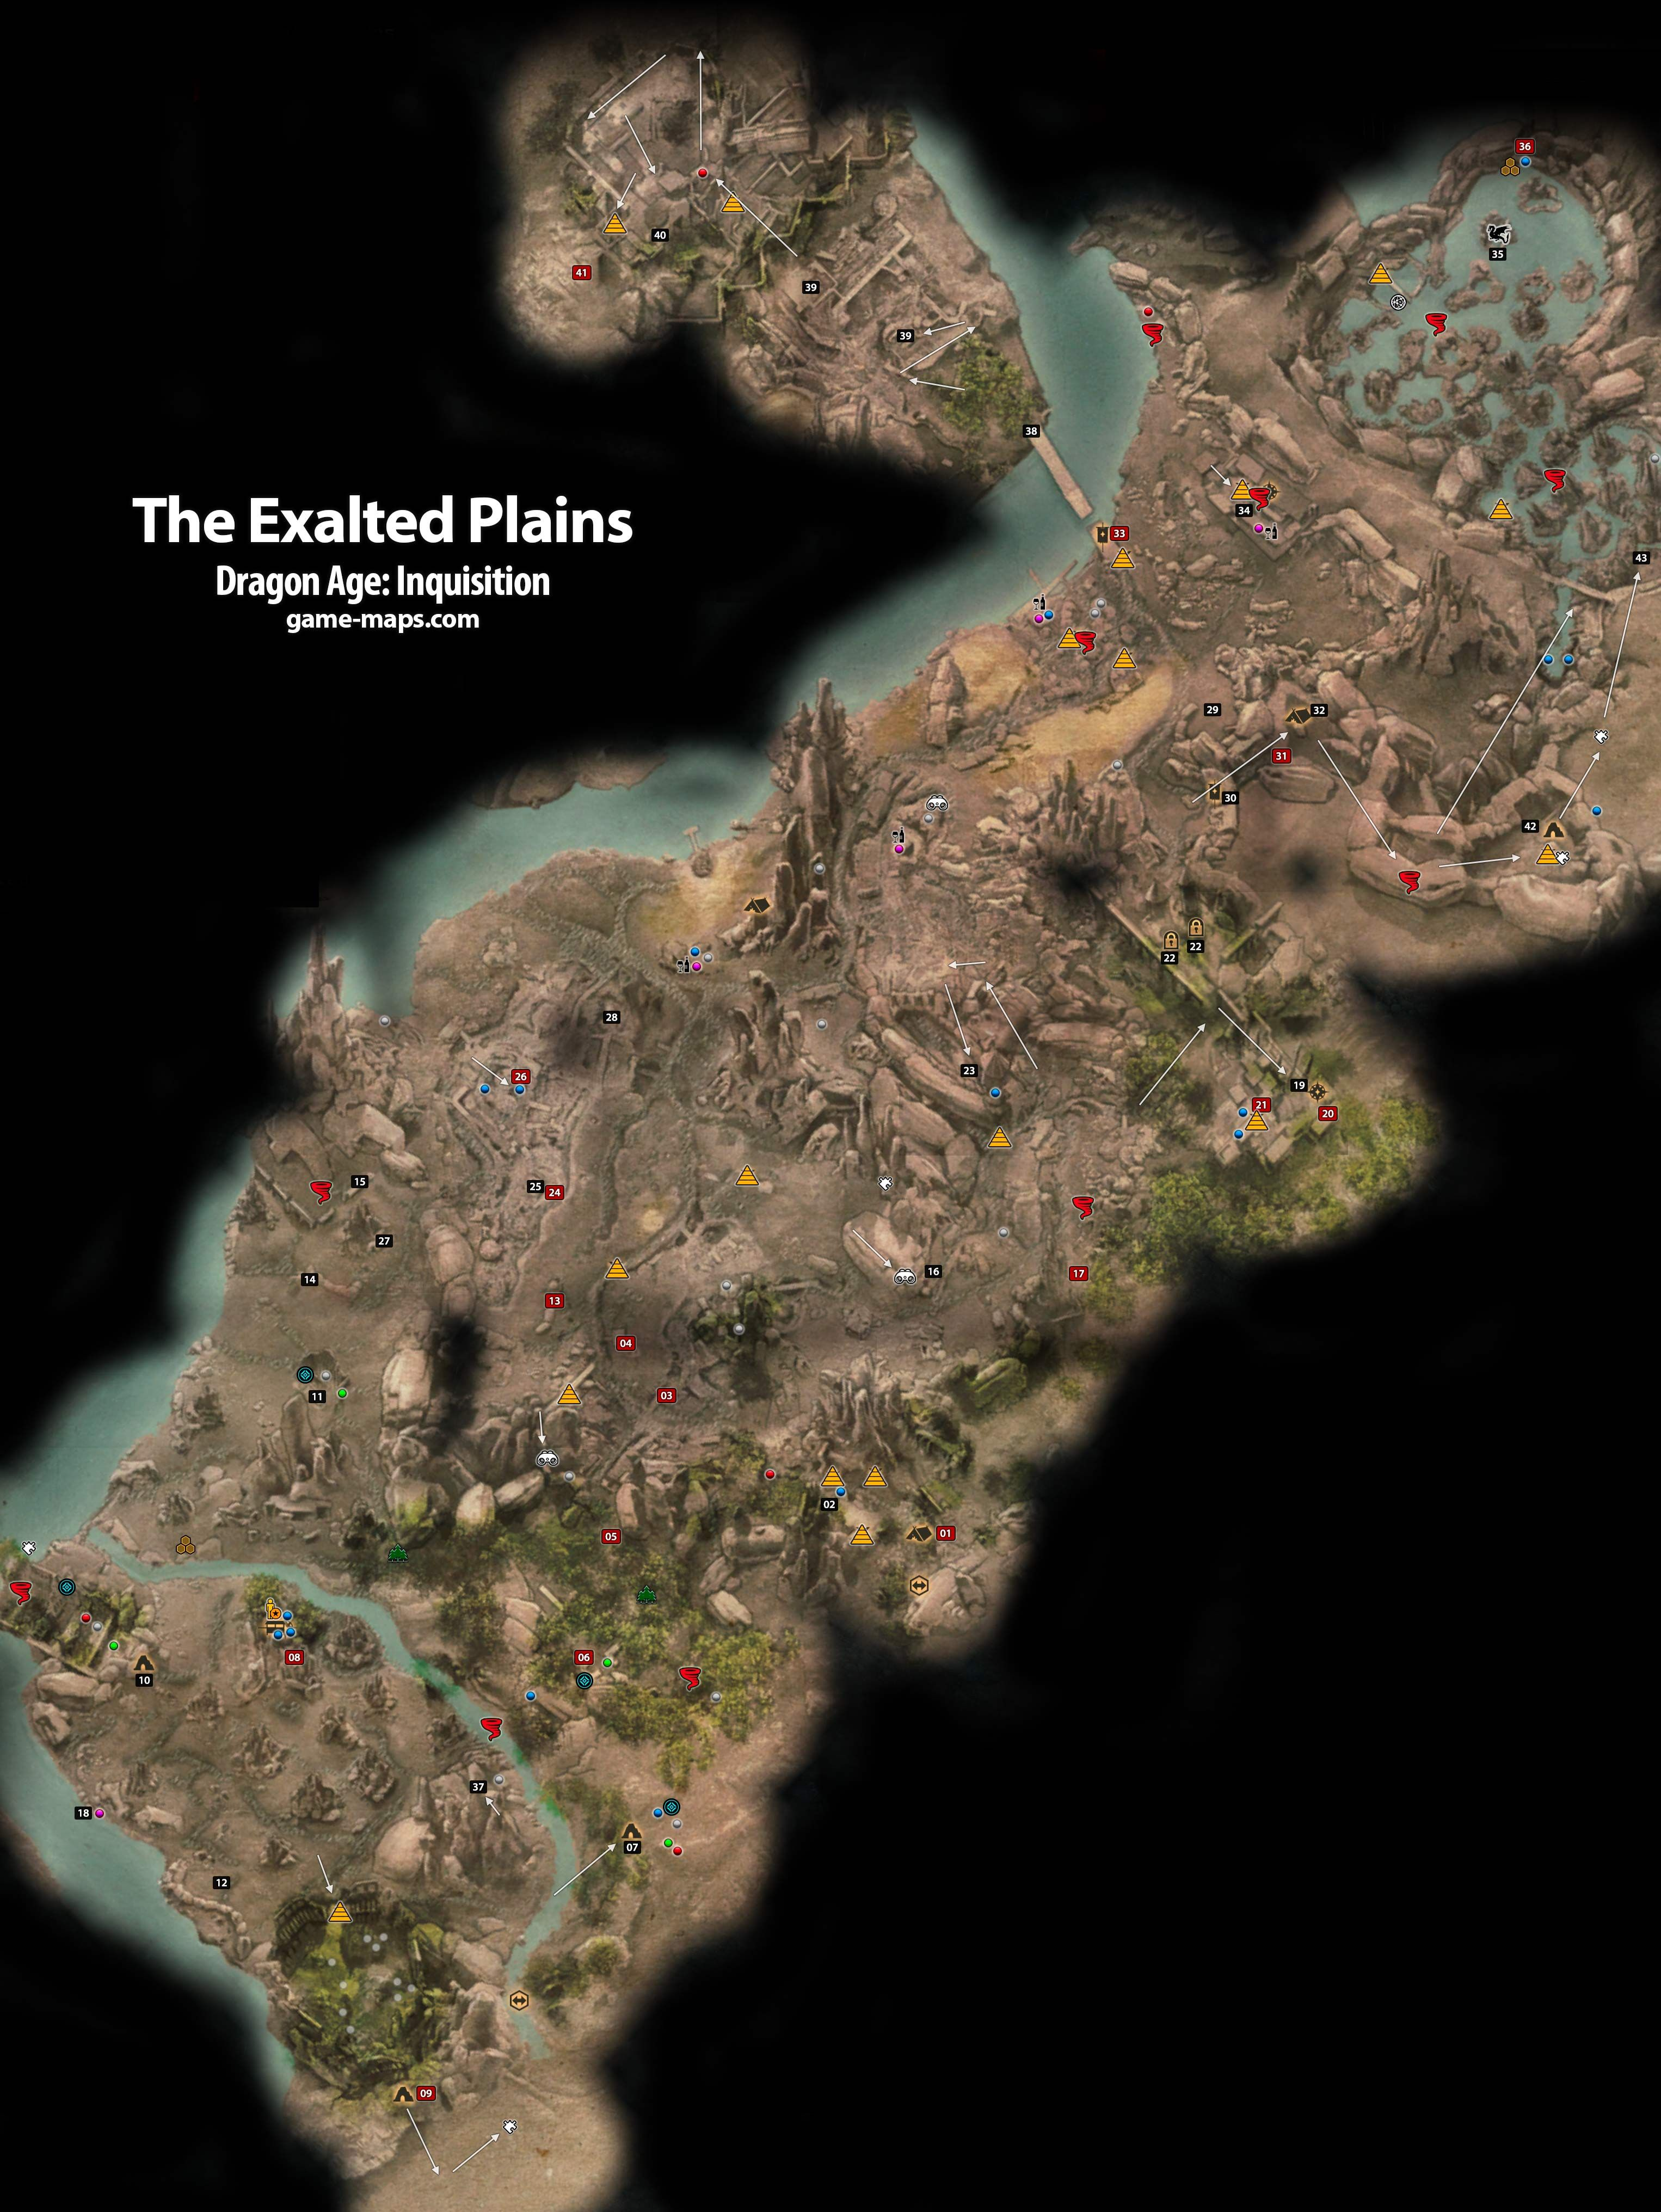 Map of the exalted plains dragon age inquisition game map of the exalted plains dragon age inquisition freerunsca Image collections